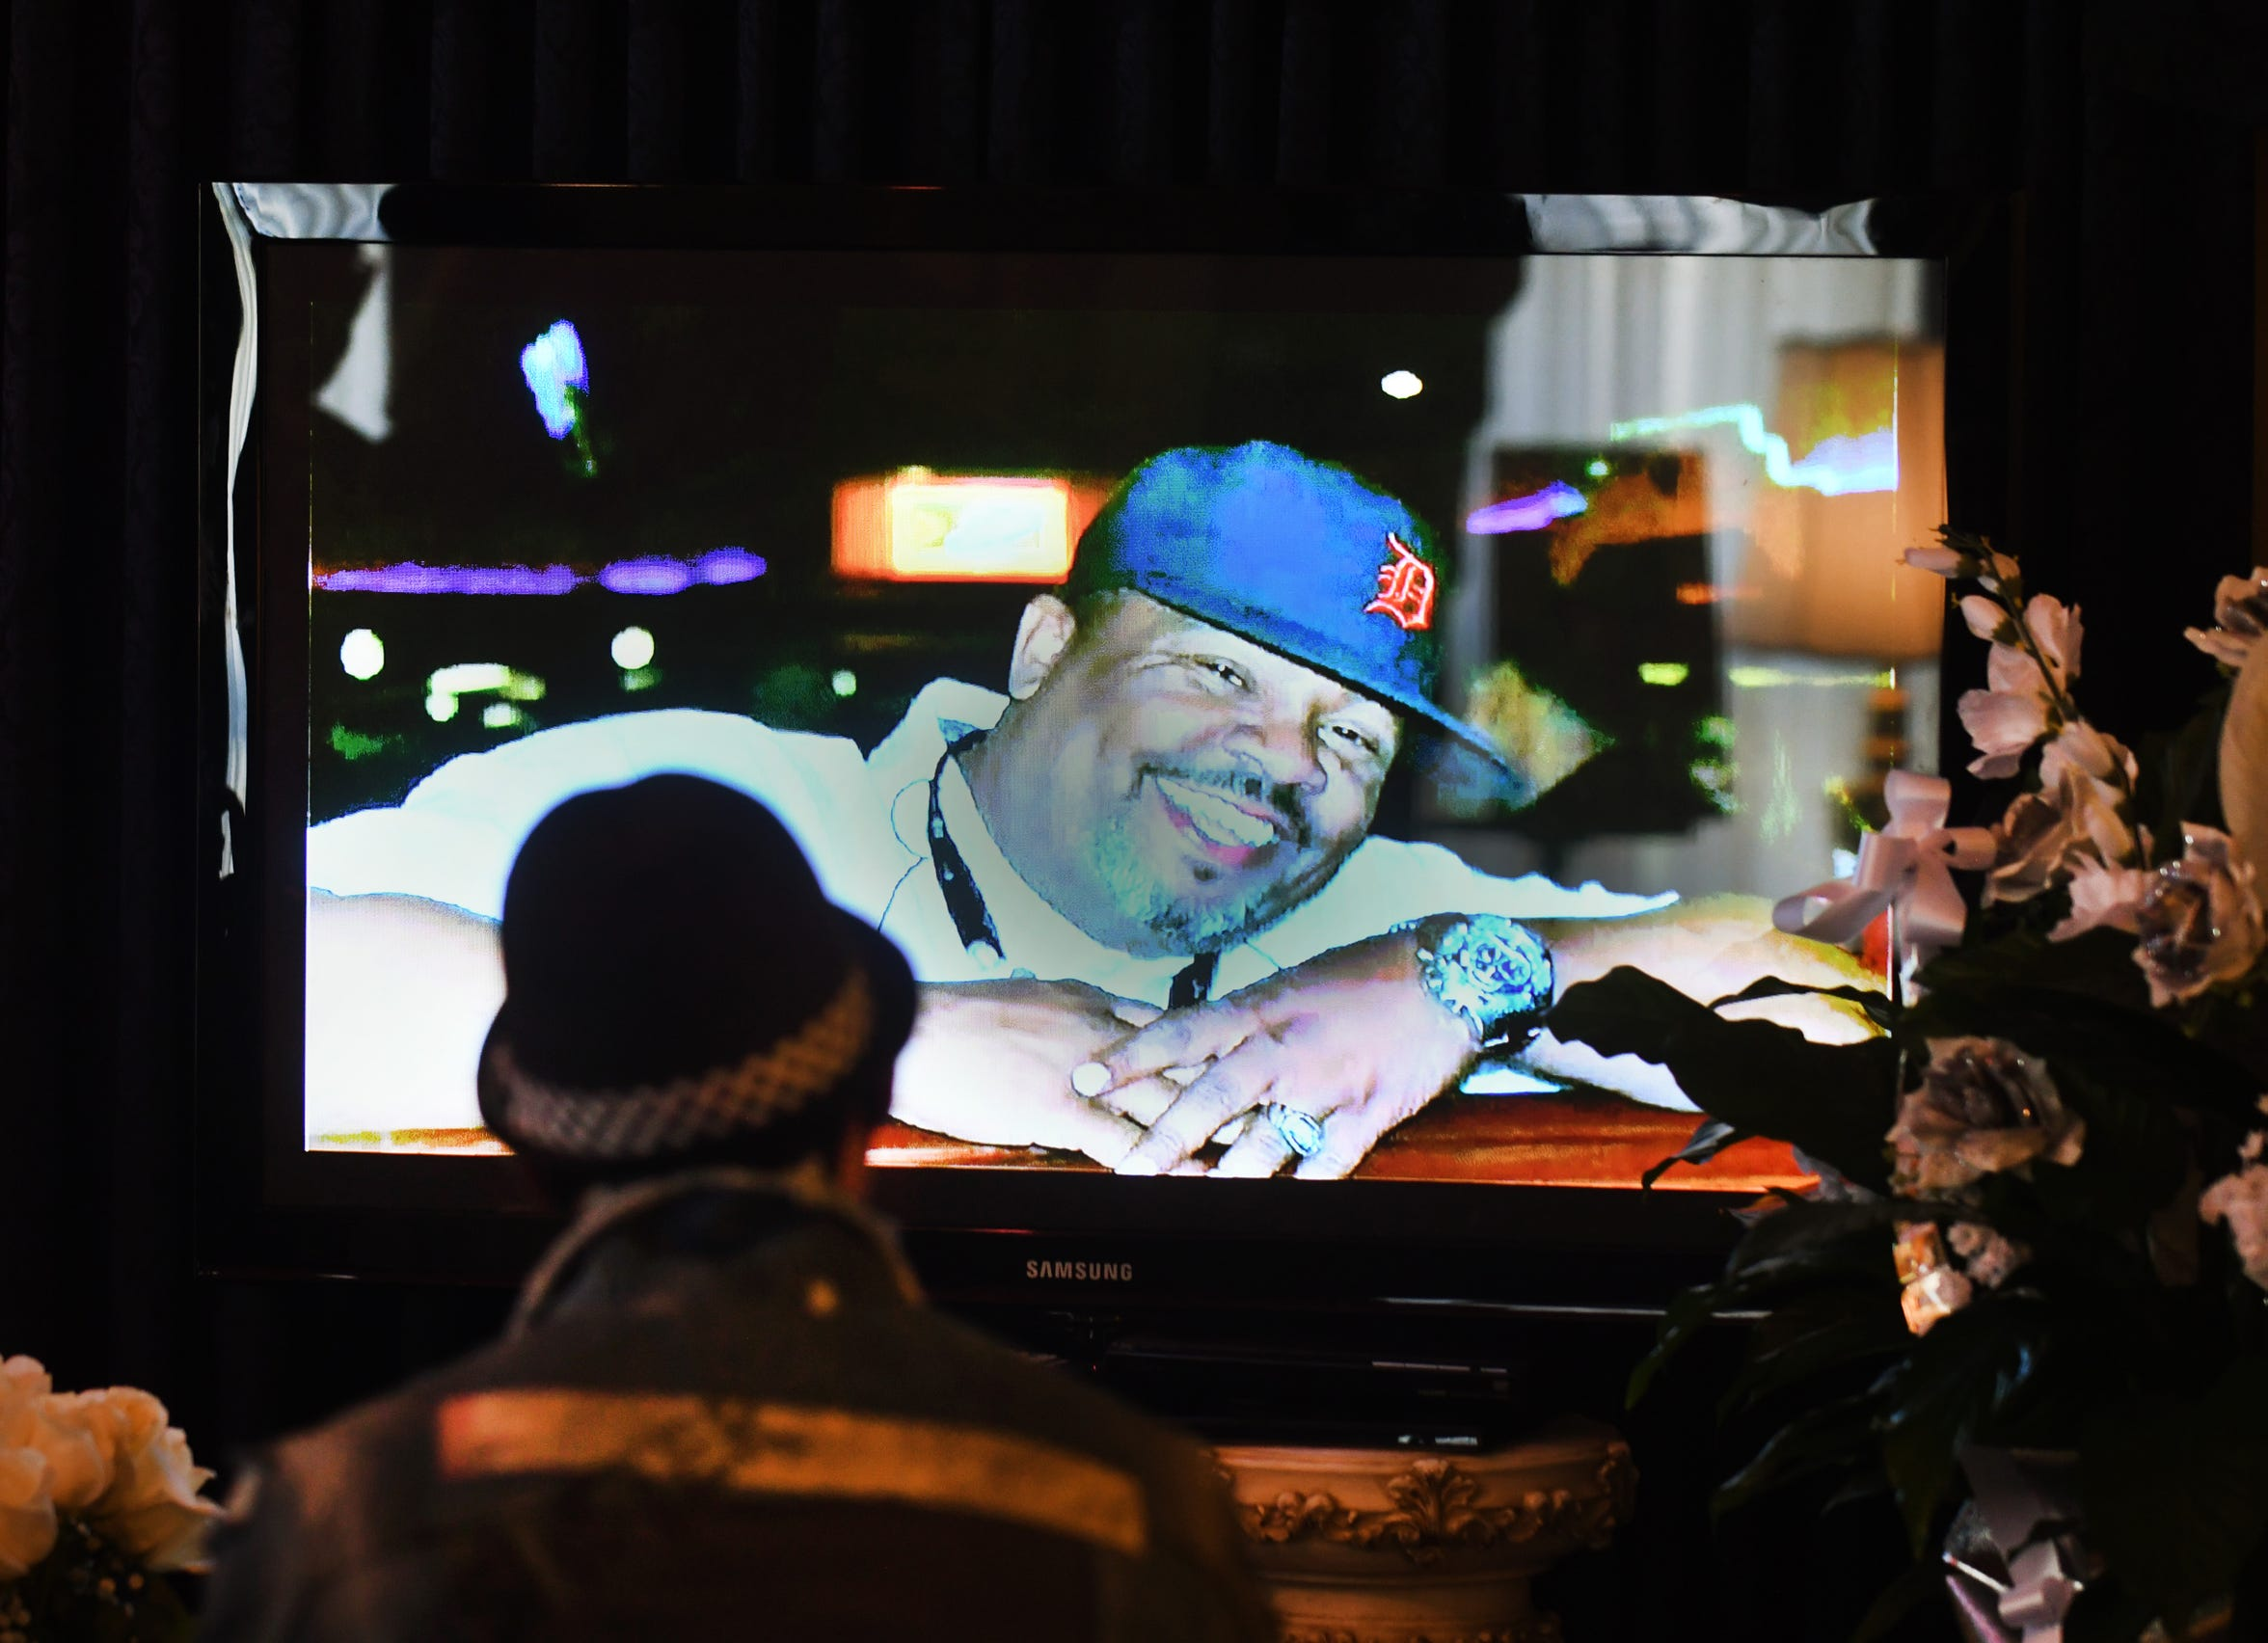 An image of Lorenzo Seldon, 51, a union steward at Fiat Chrysler's Warren Truck plant who passed away from COVID-19, is projected at his memorial service in Redford Township, Michigan on May 1, 2020.